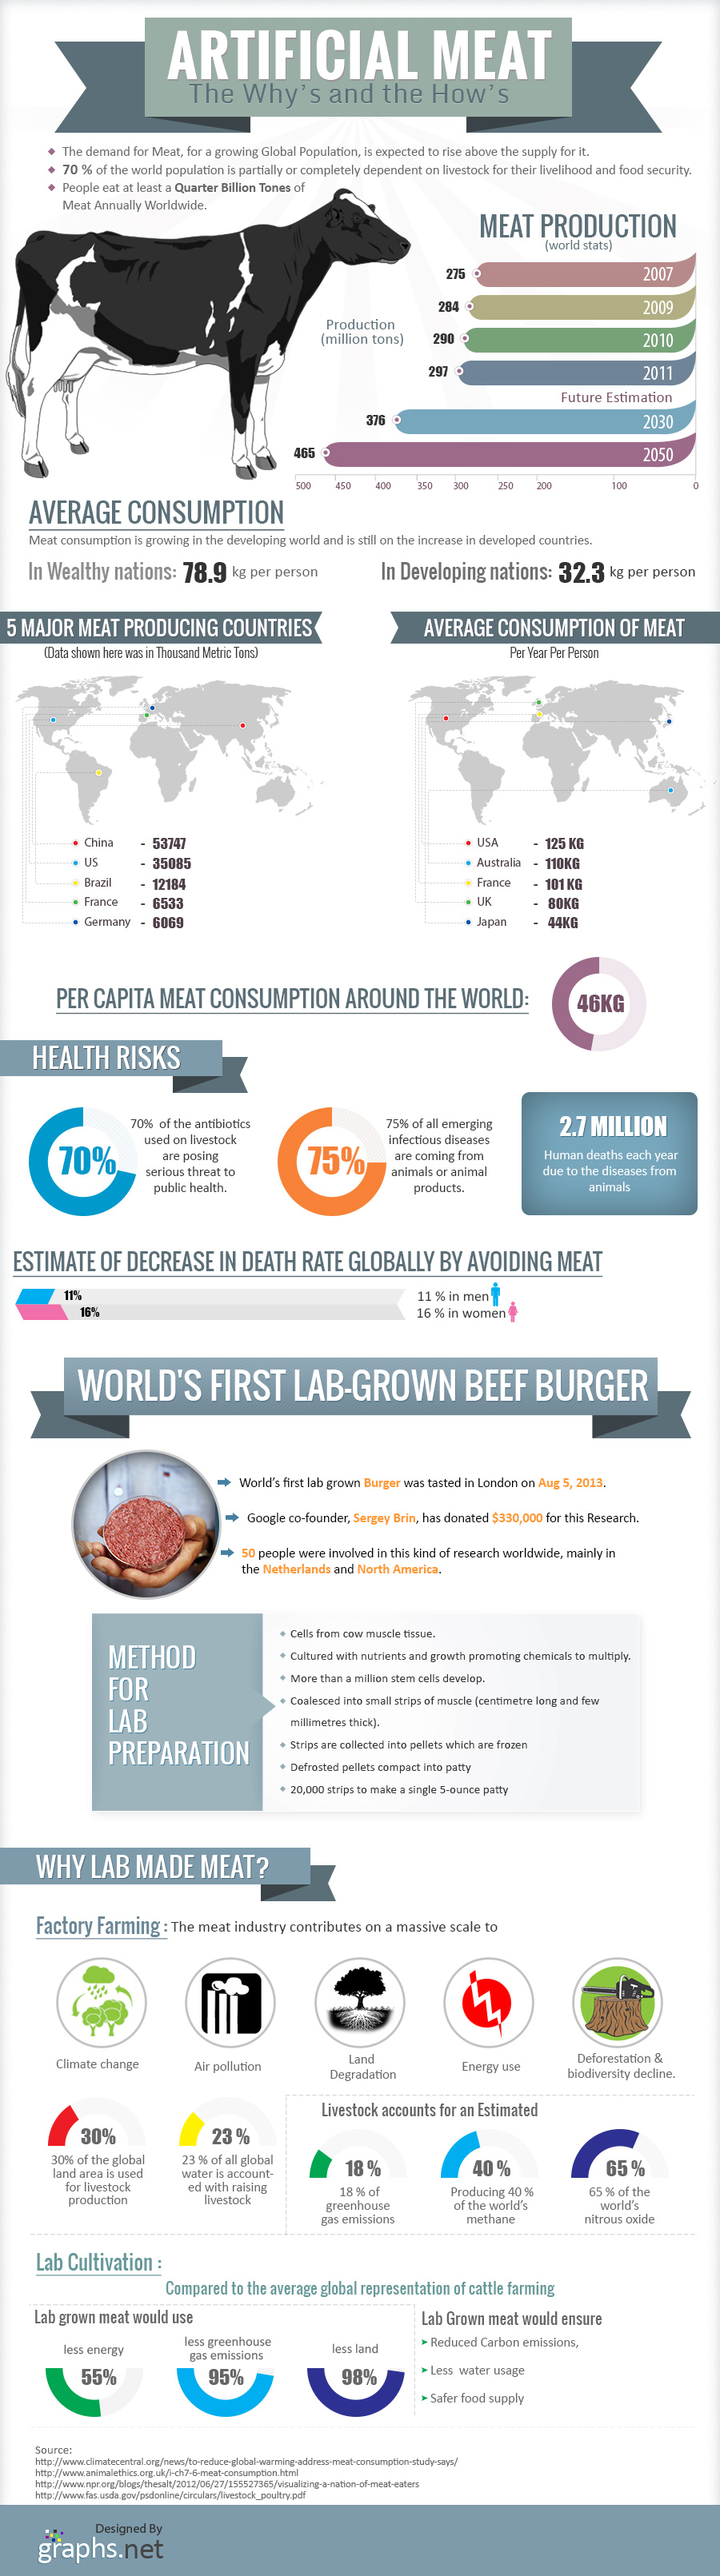 Interesting Facts About Artificial Meat